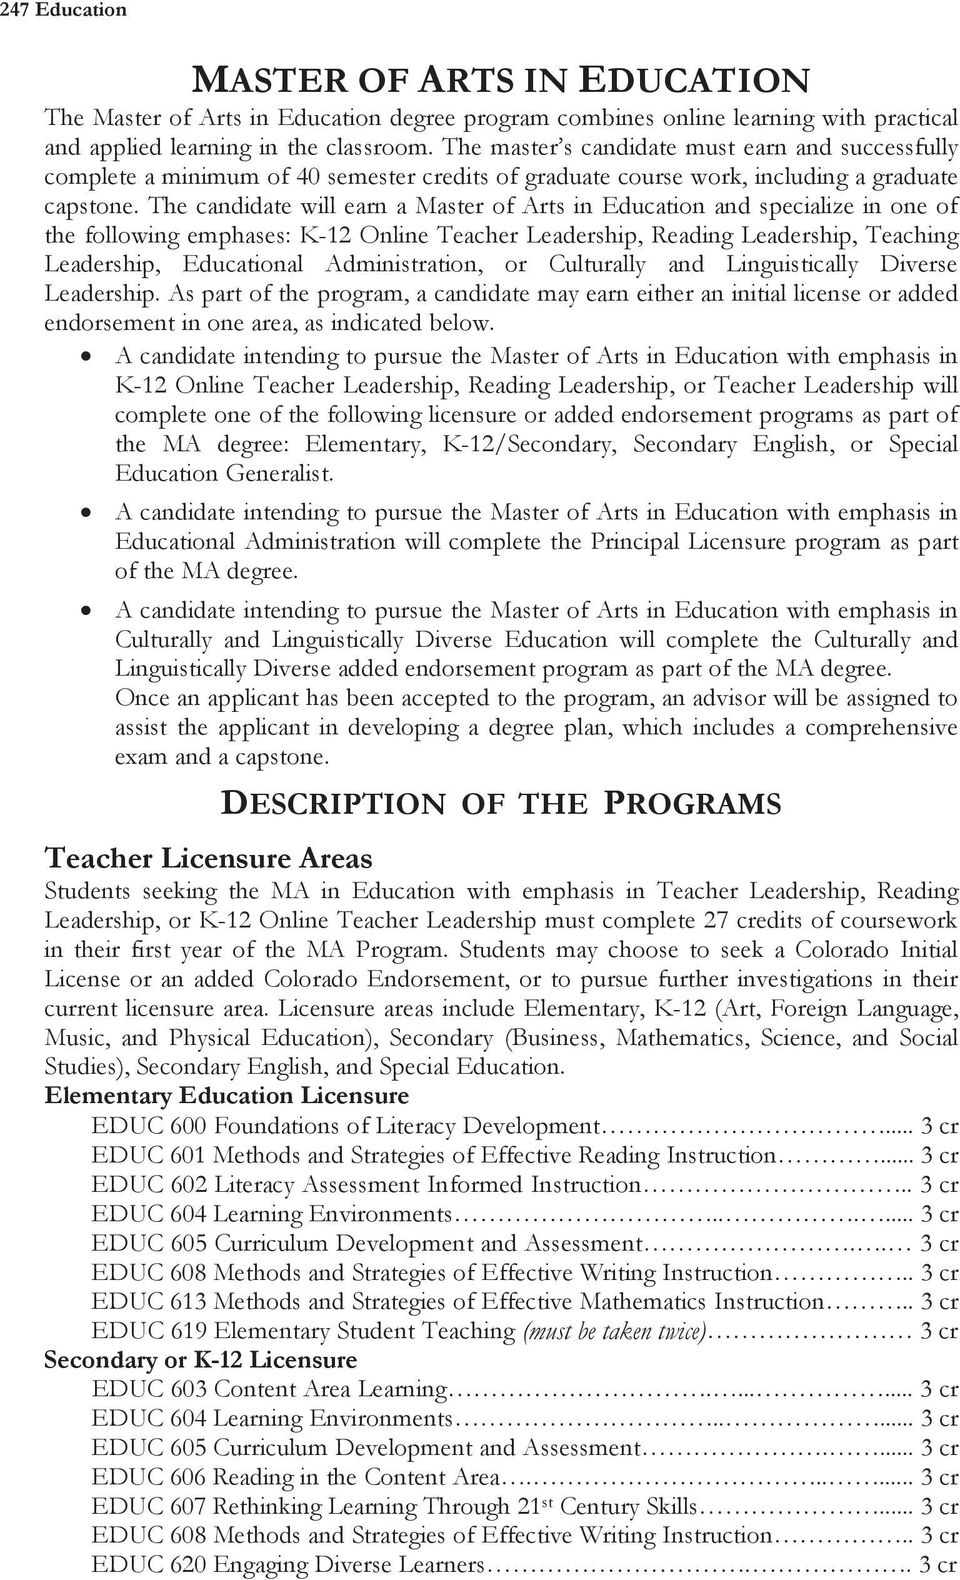 The candidate will earn a Master of Arts in Education and specialize in one of the following emphases: K-12 Online Teacher Leadership, Reading Leadership, Teaching Leadership, Educational